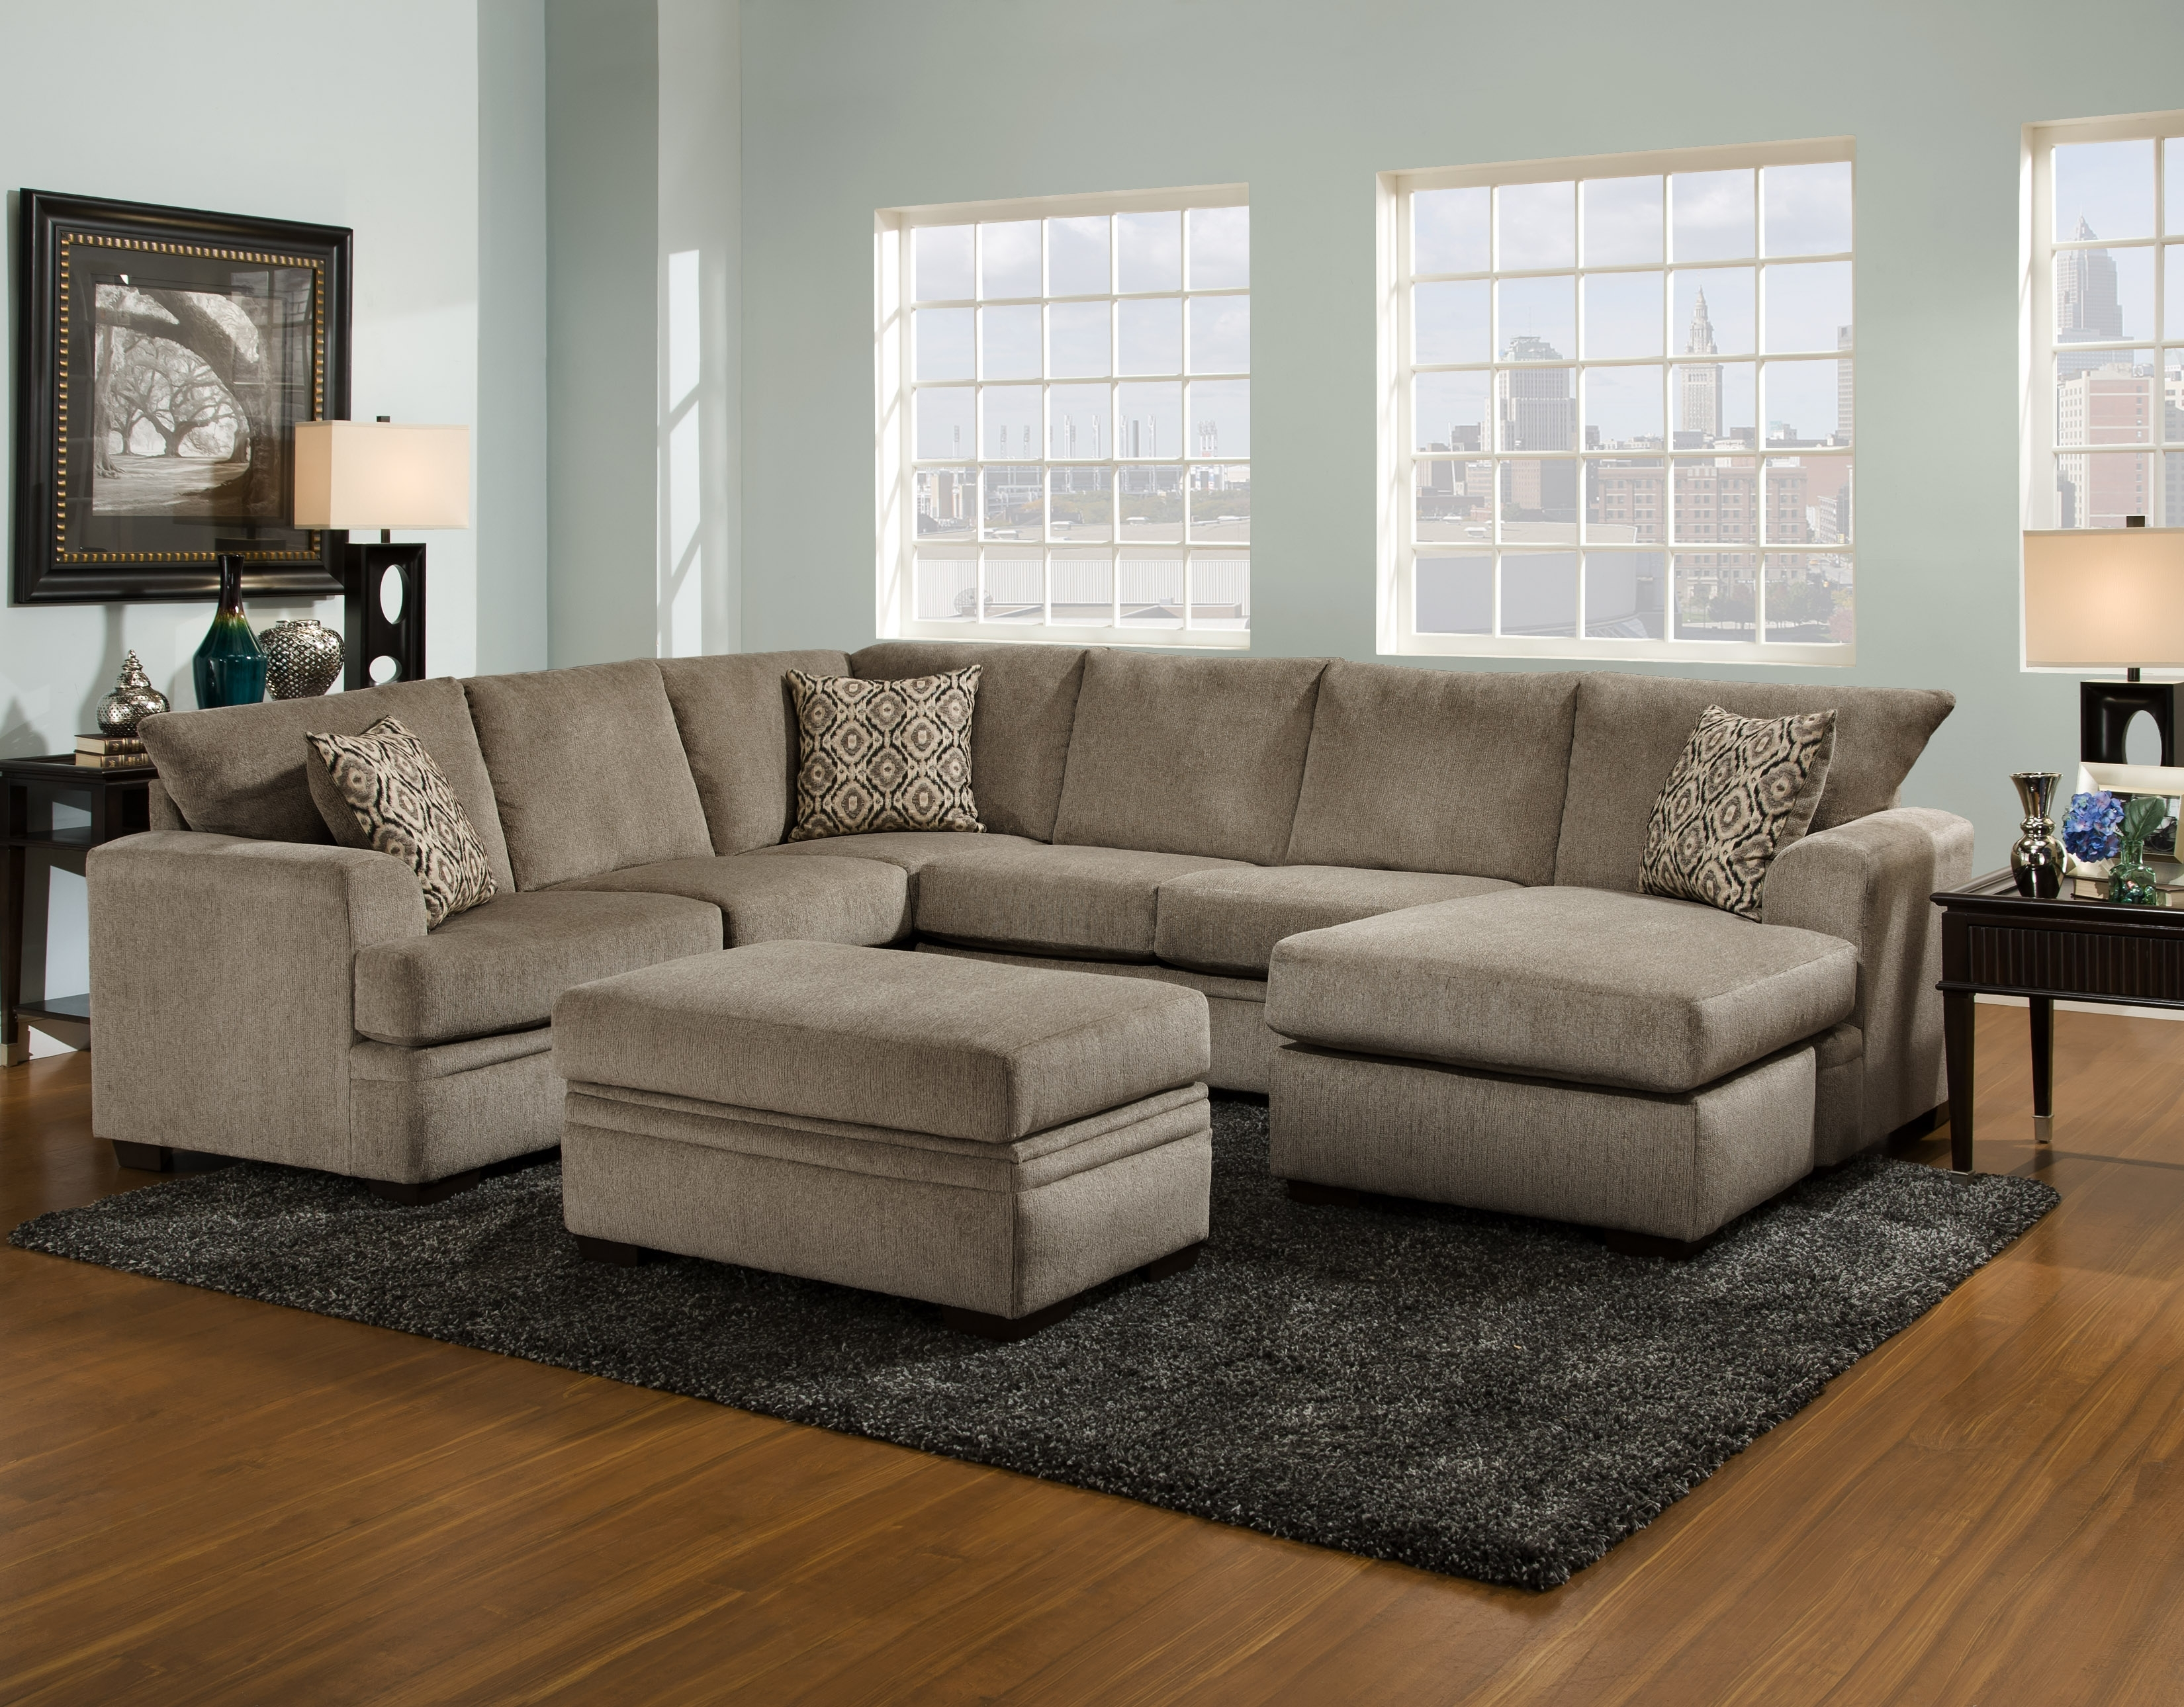 Featured Image of Janesville Wi Sectional Sofas